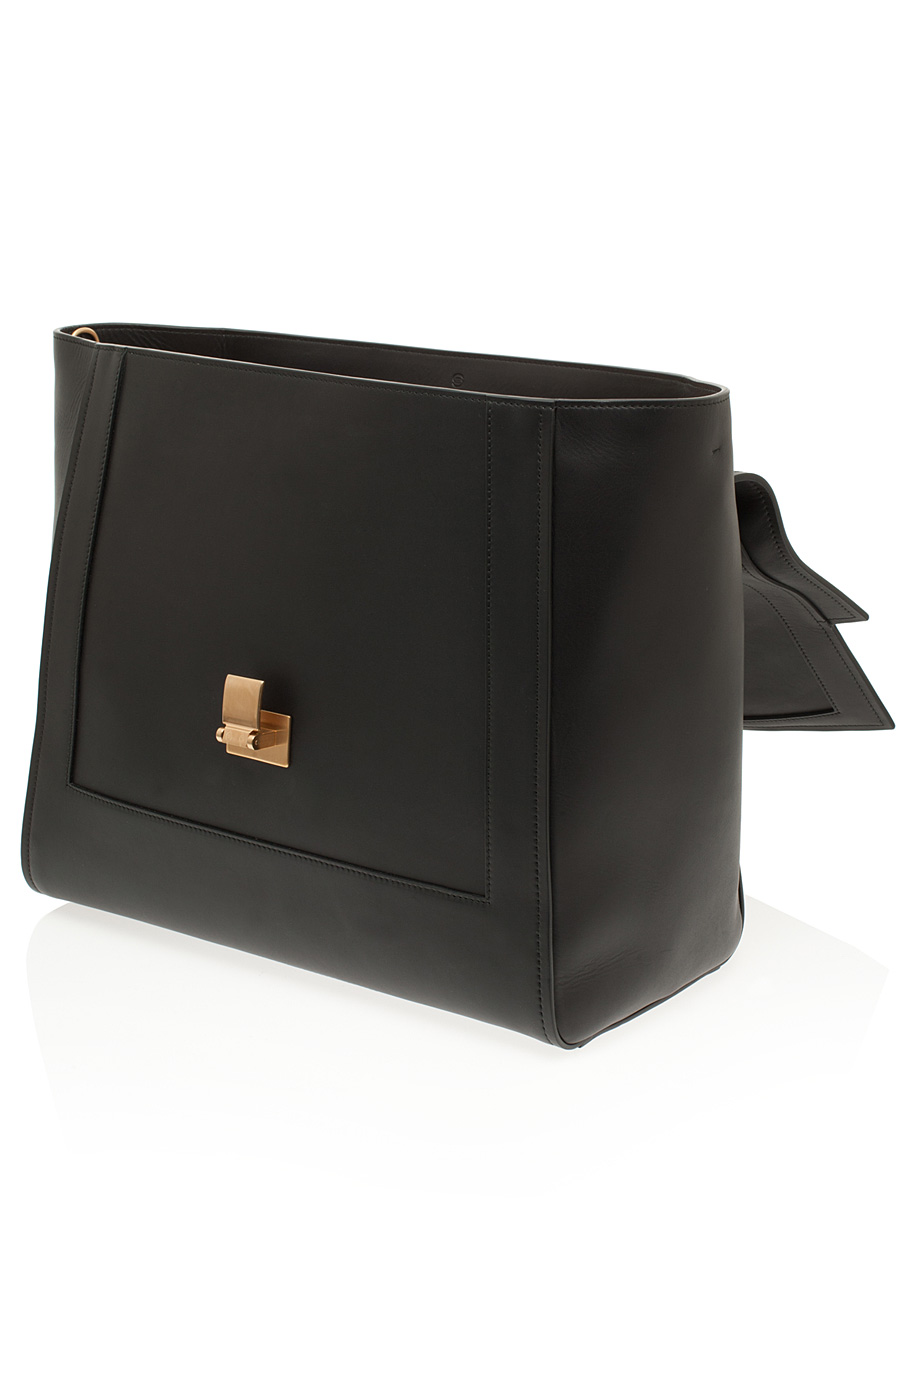 Elie saab Large Calfskin Metal Buckle Bag in Black | Lyst